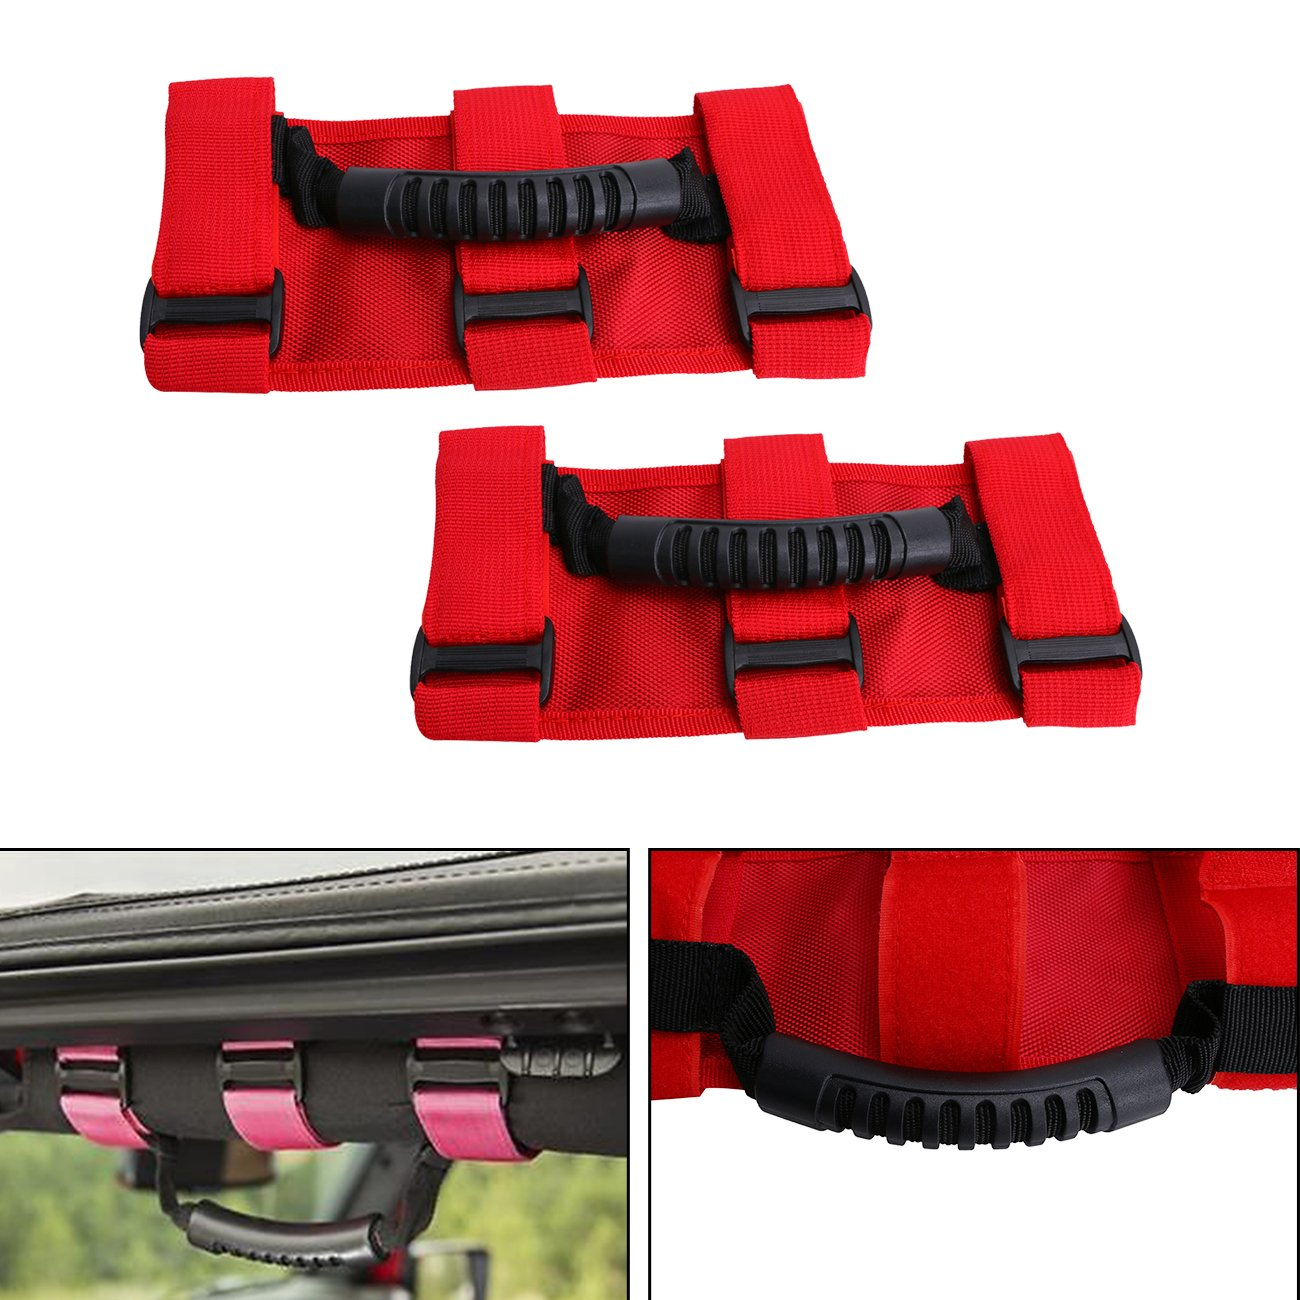 BOXATDOOR Roll Bar Grab Handles X 4 For Wrangler YJ TJ JK JKU 1987-2016, Triple Strap Roll Bar Grab Grip Handles Black Fit For Jeep Wrangler JK/CJ/ YJ/ TJ 1987-2015